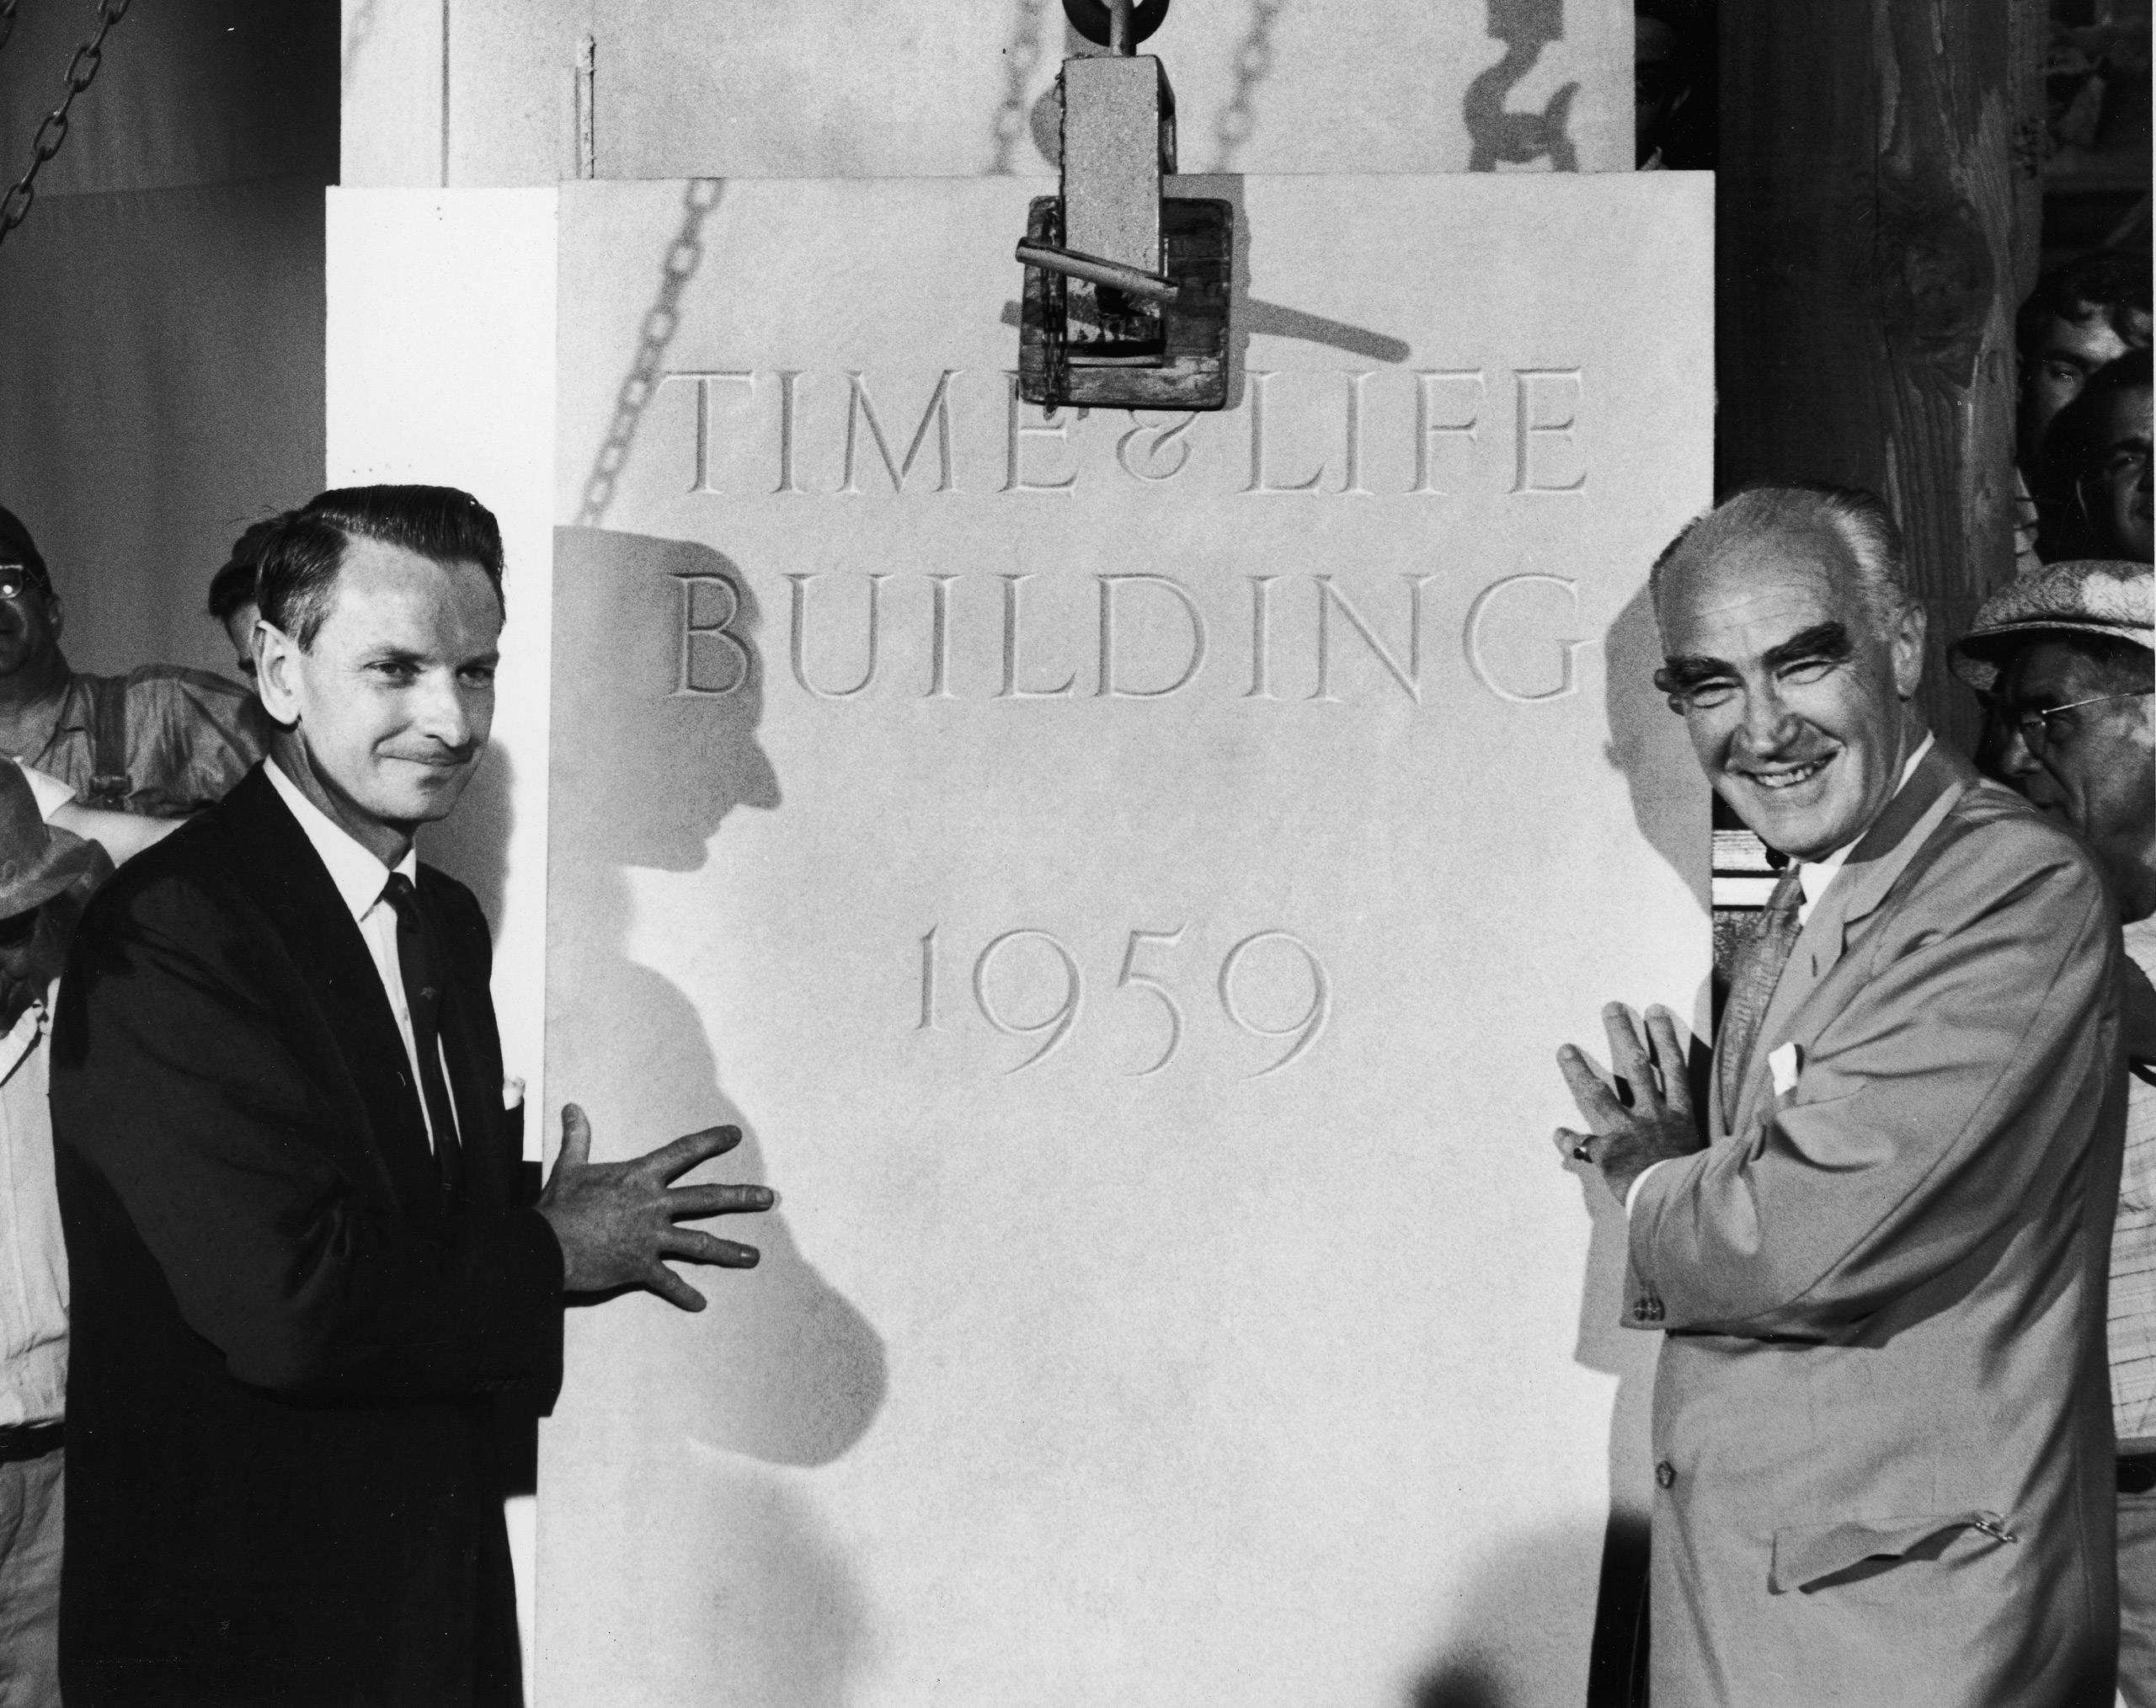 Laurance Rockefeller and TIME co-founder Henry R. Luce at the laying of the cornerstone of the new TIME & LIFE building, 1959.